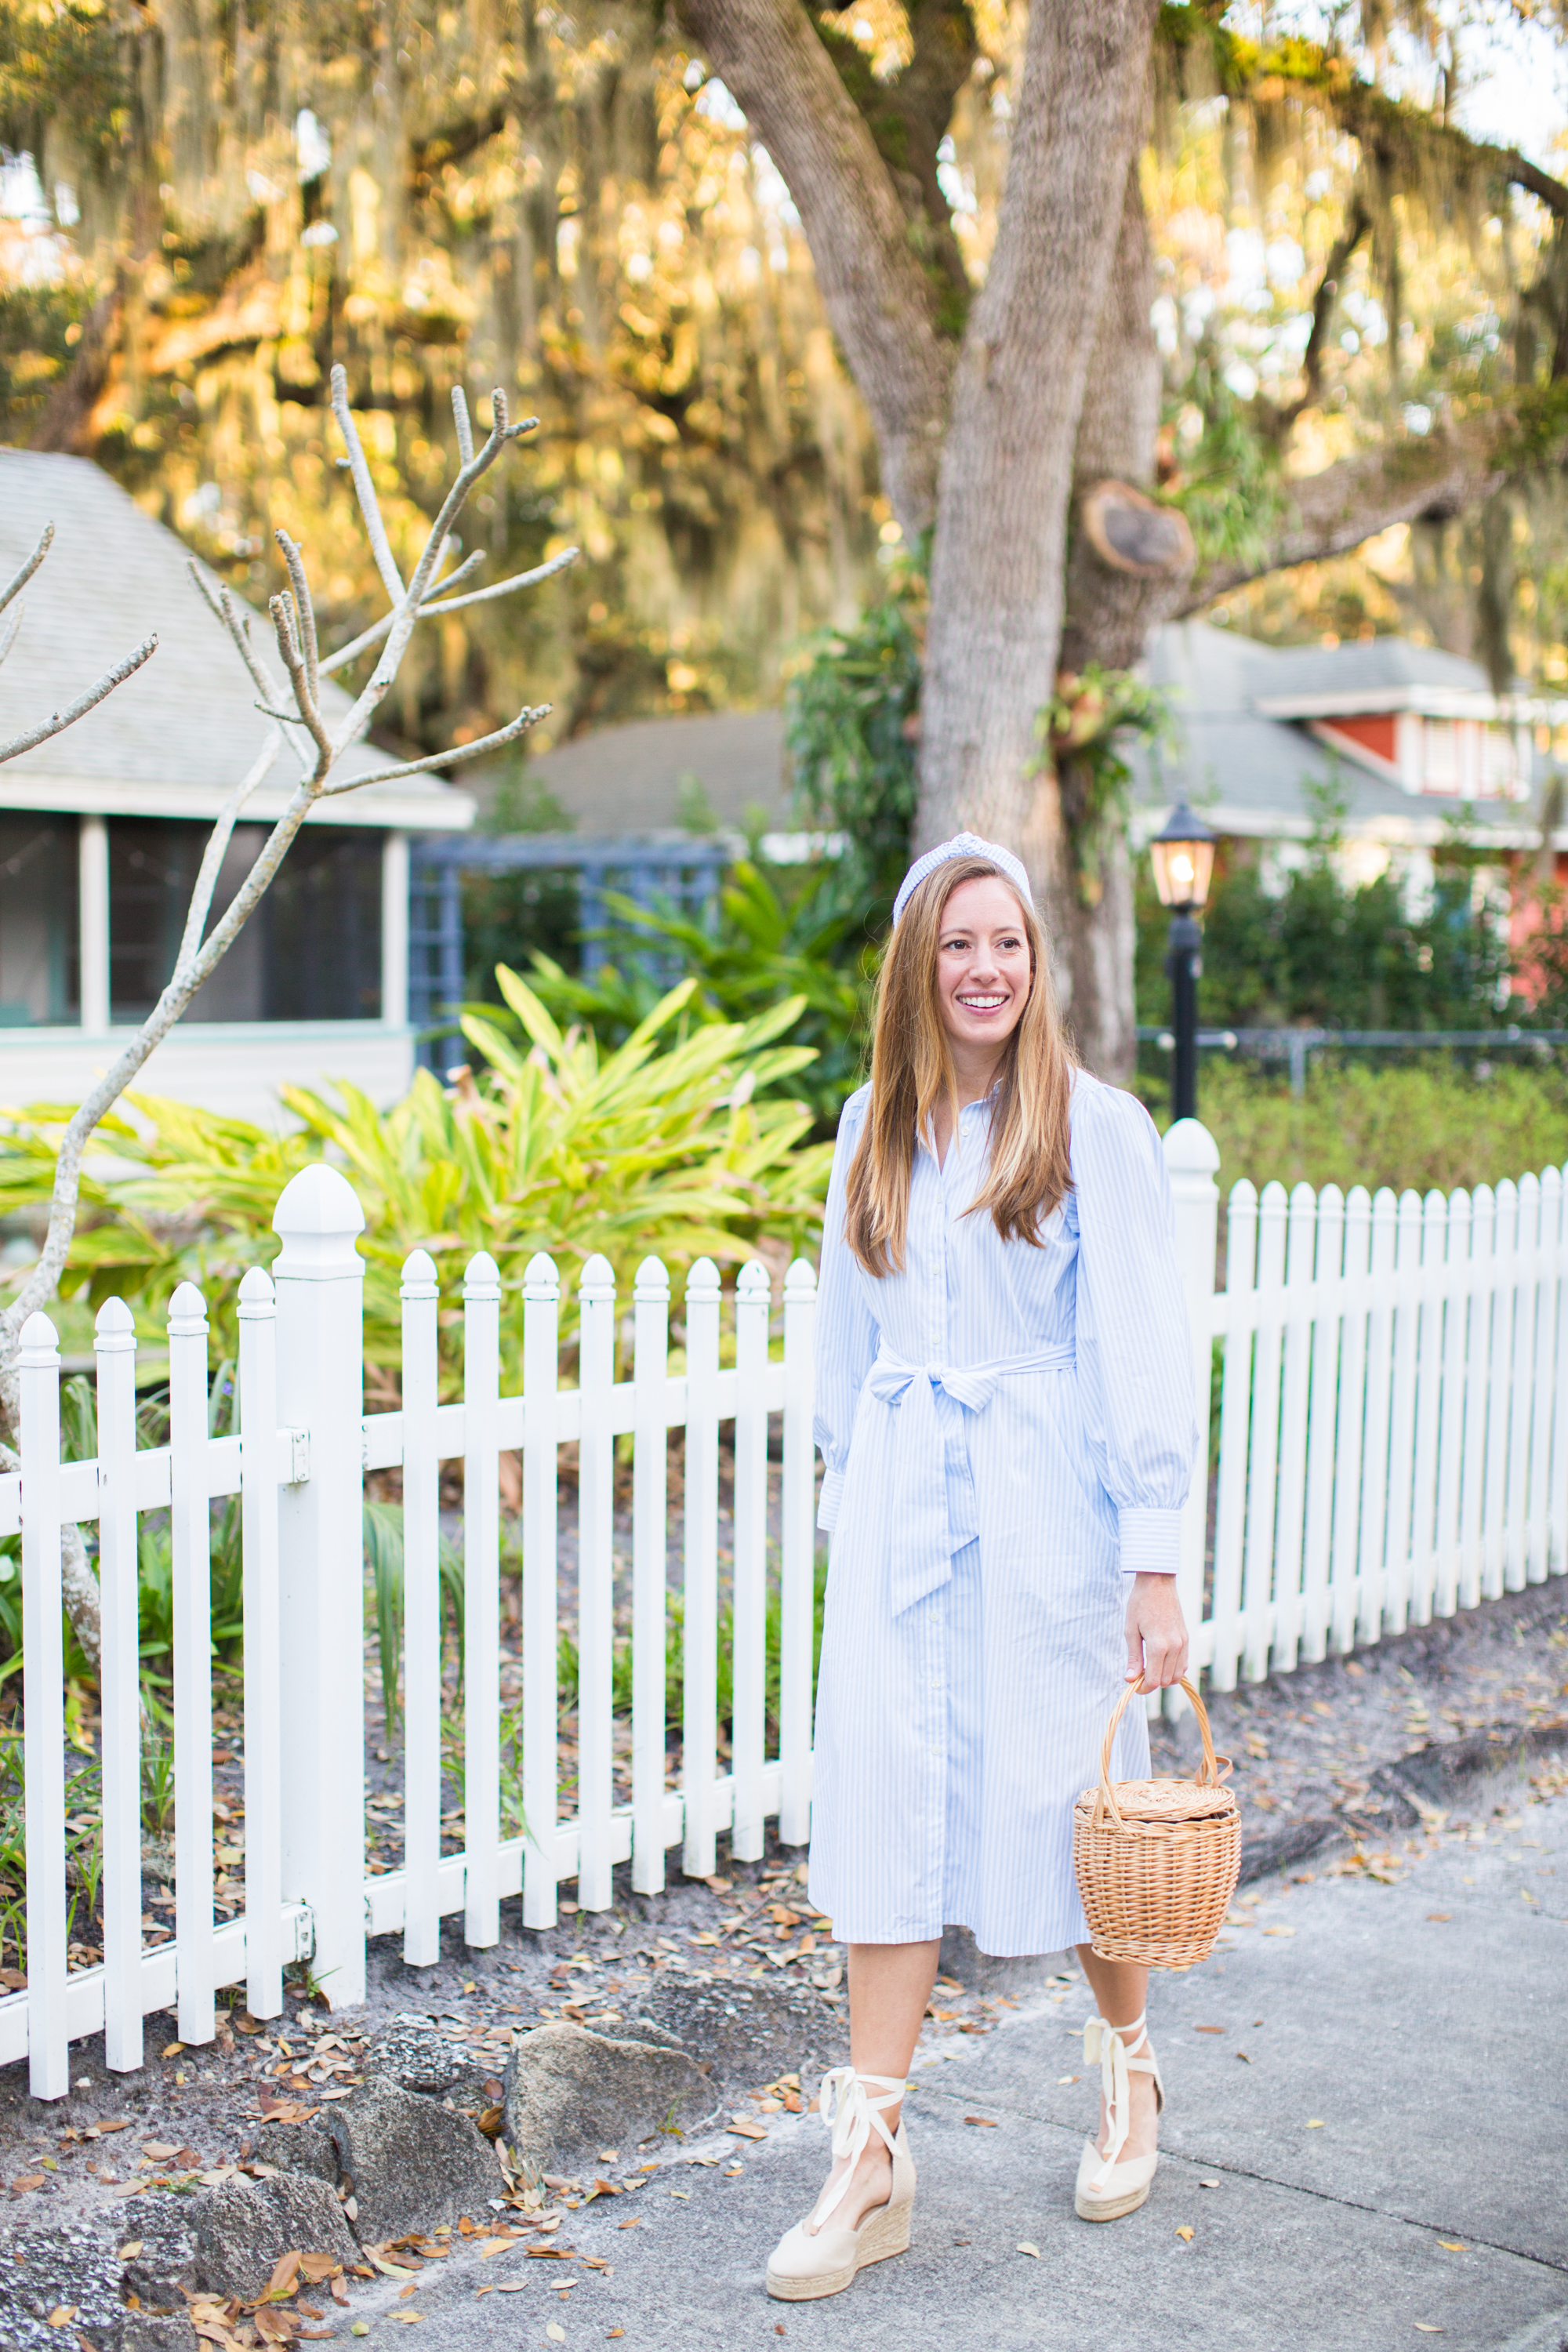 How to Style a Long Sleeve Striped Dress for Spring / Easter Dress / Easter Outfit / Spring Dress / Blue Stripe Dress / Spring Outfit Inspiration / Blue Striped Headband / Sunshine Style - A Florida Based Fashion and Lifestyle Blog by Katie